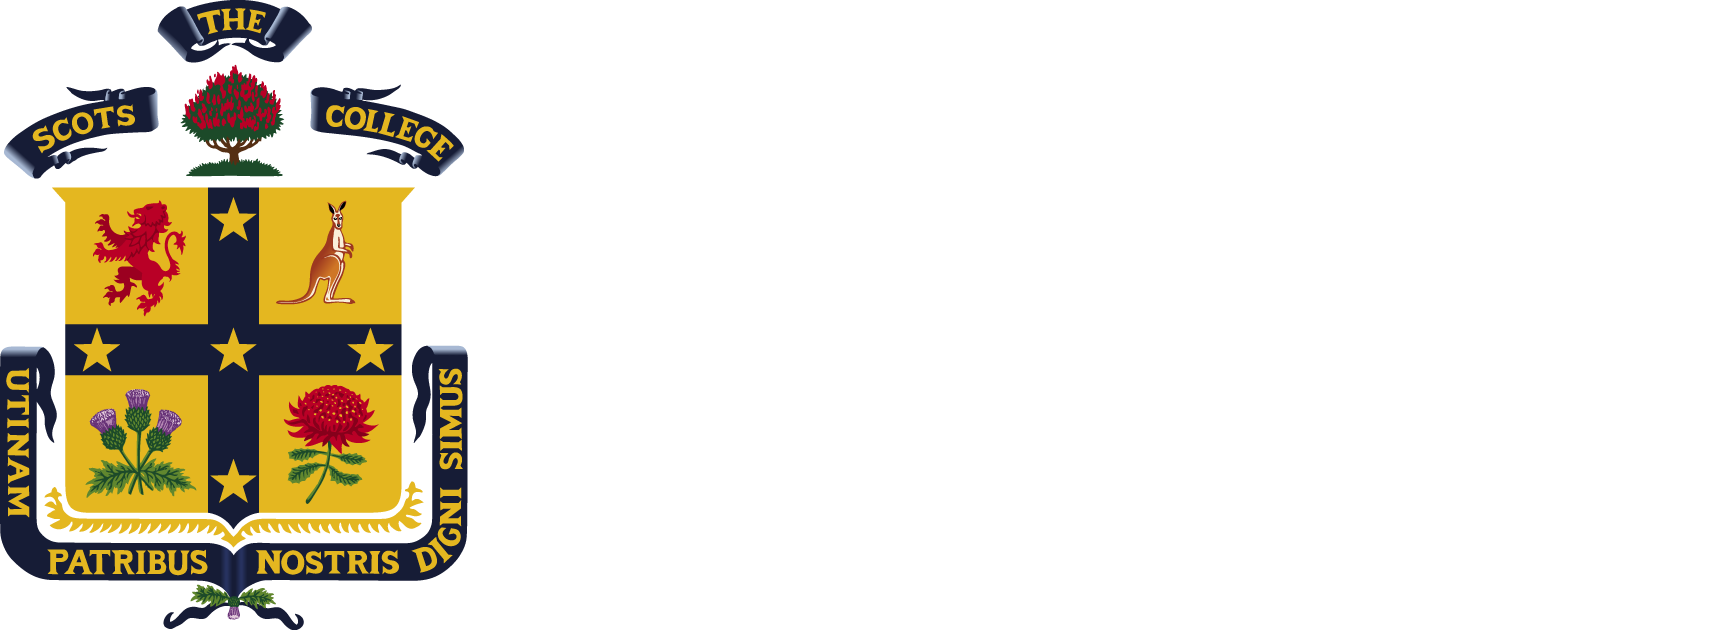 The Scots College logo